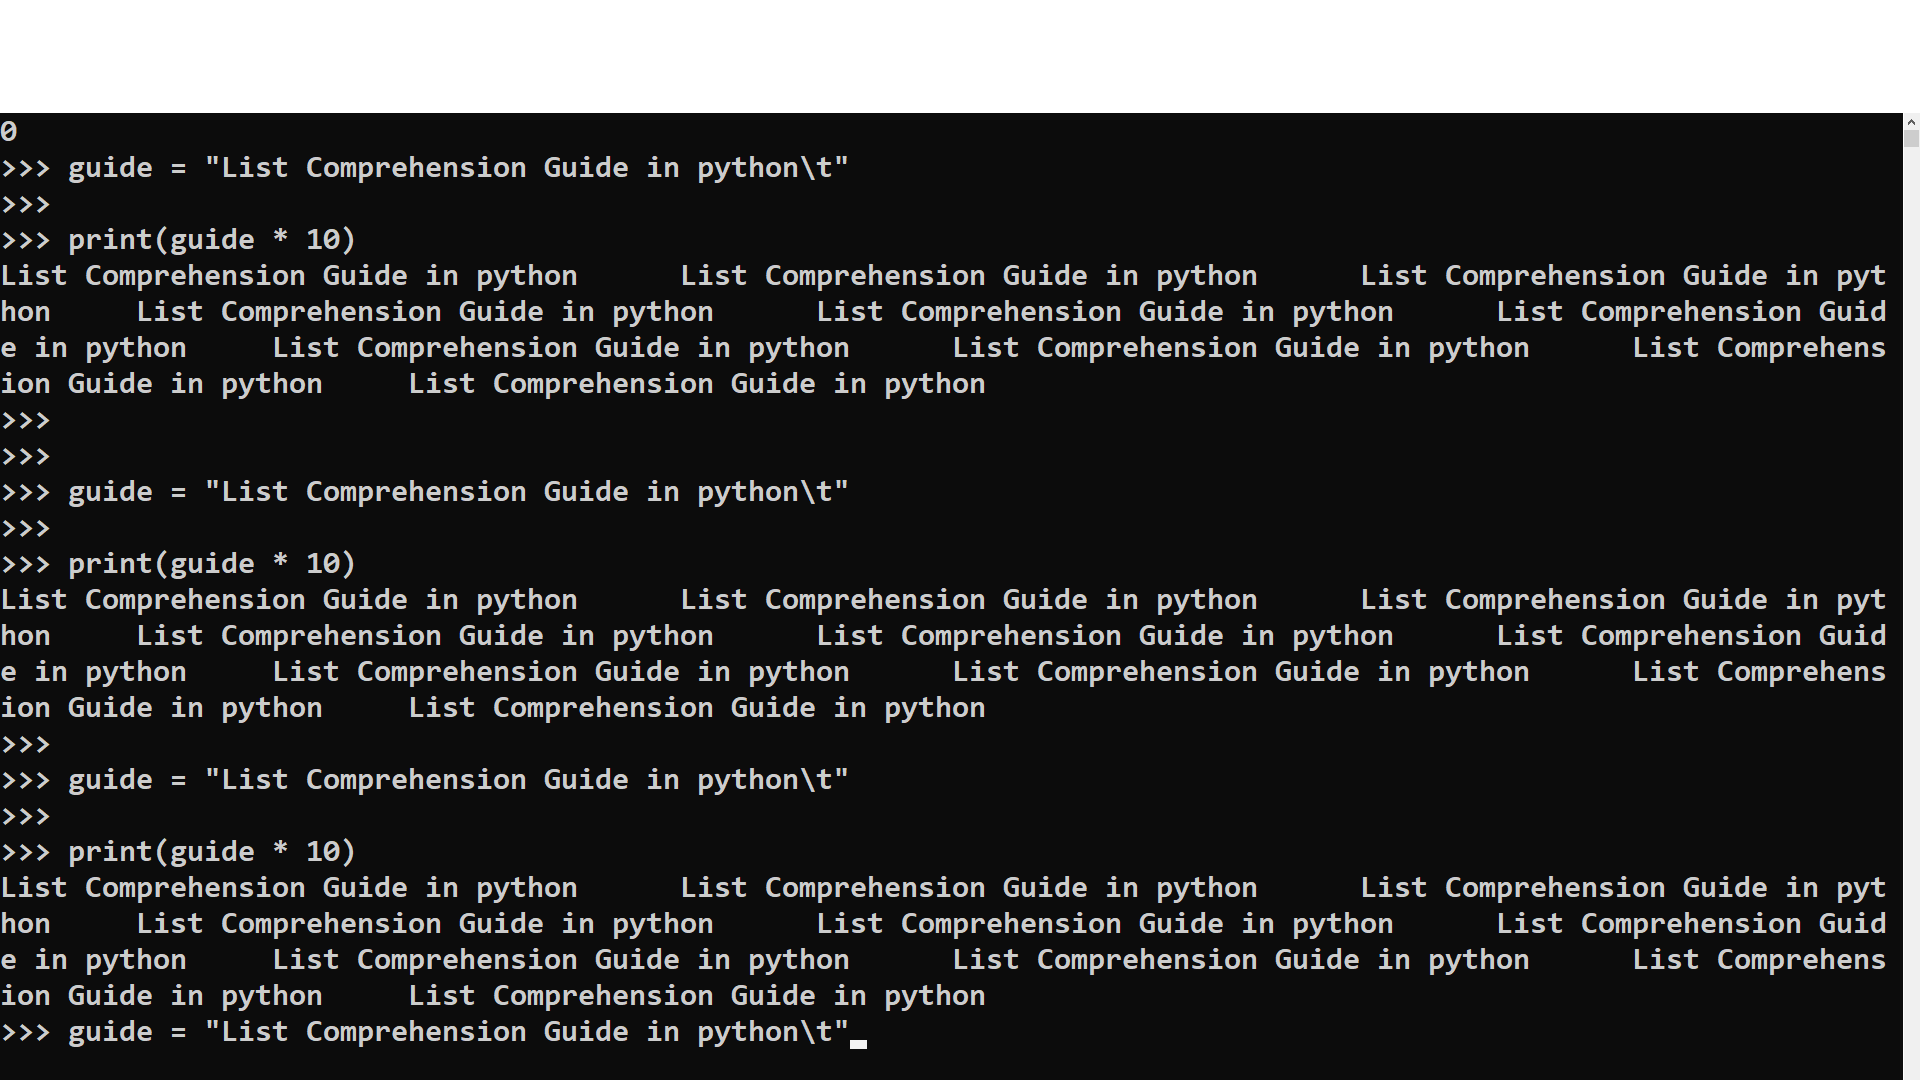 List Comprehension Guide in python